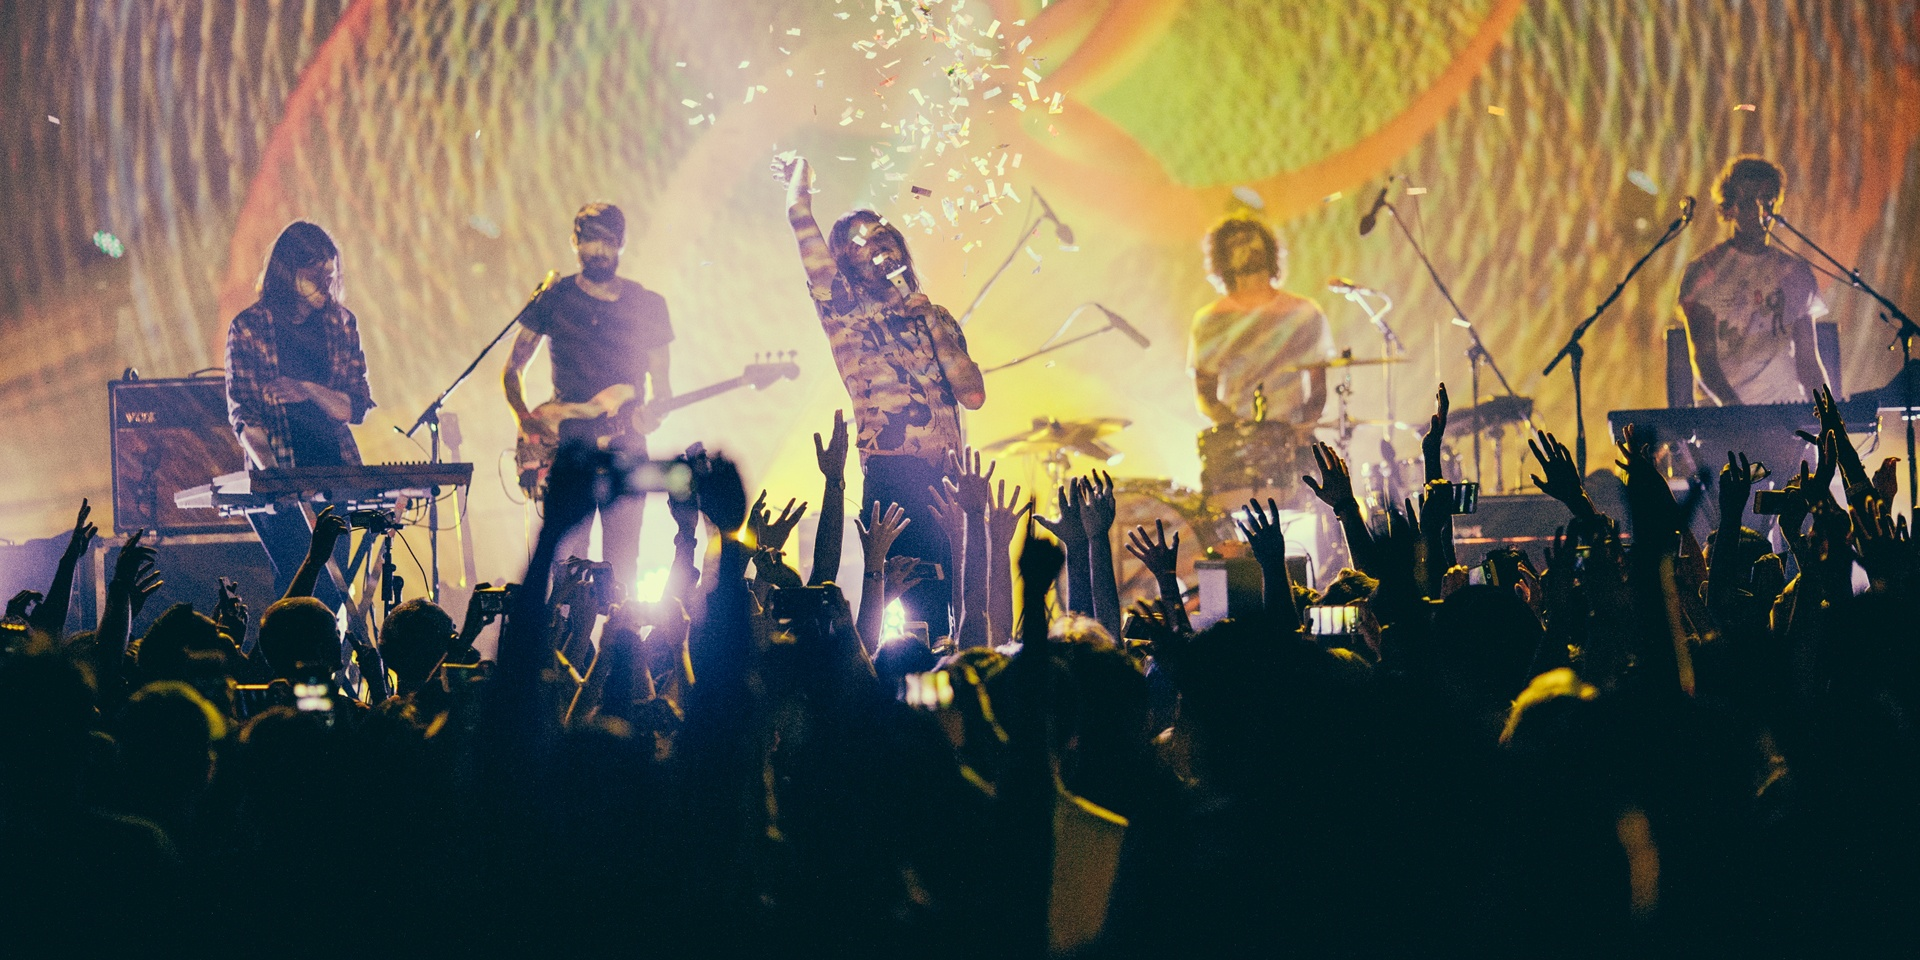 GIG REPORT: Tame Impala turns regal theatre into psychedelic dance floor